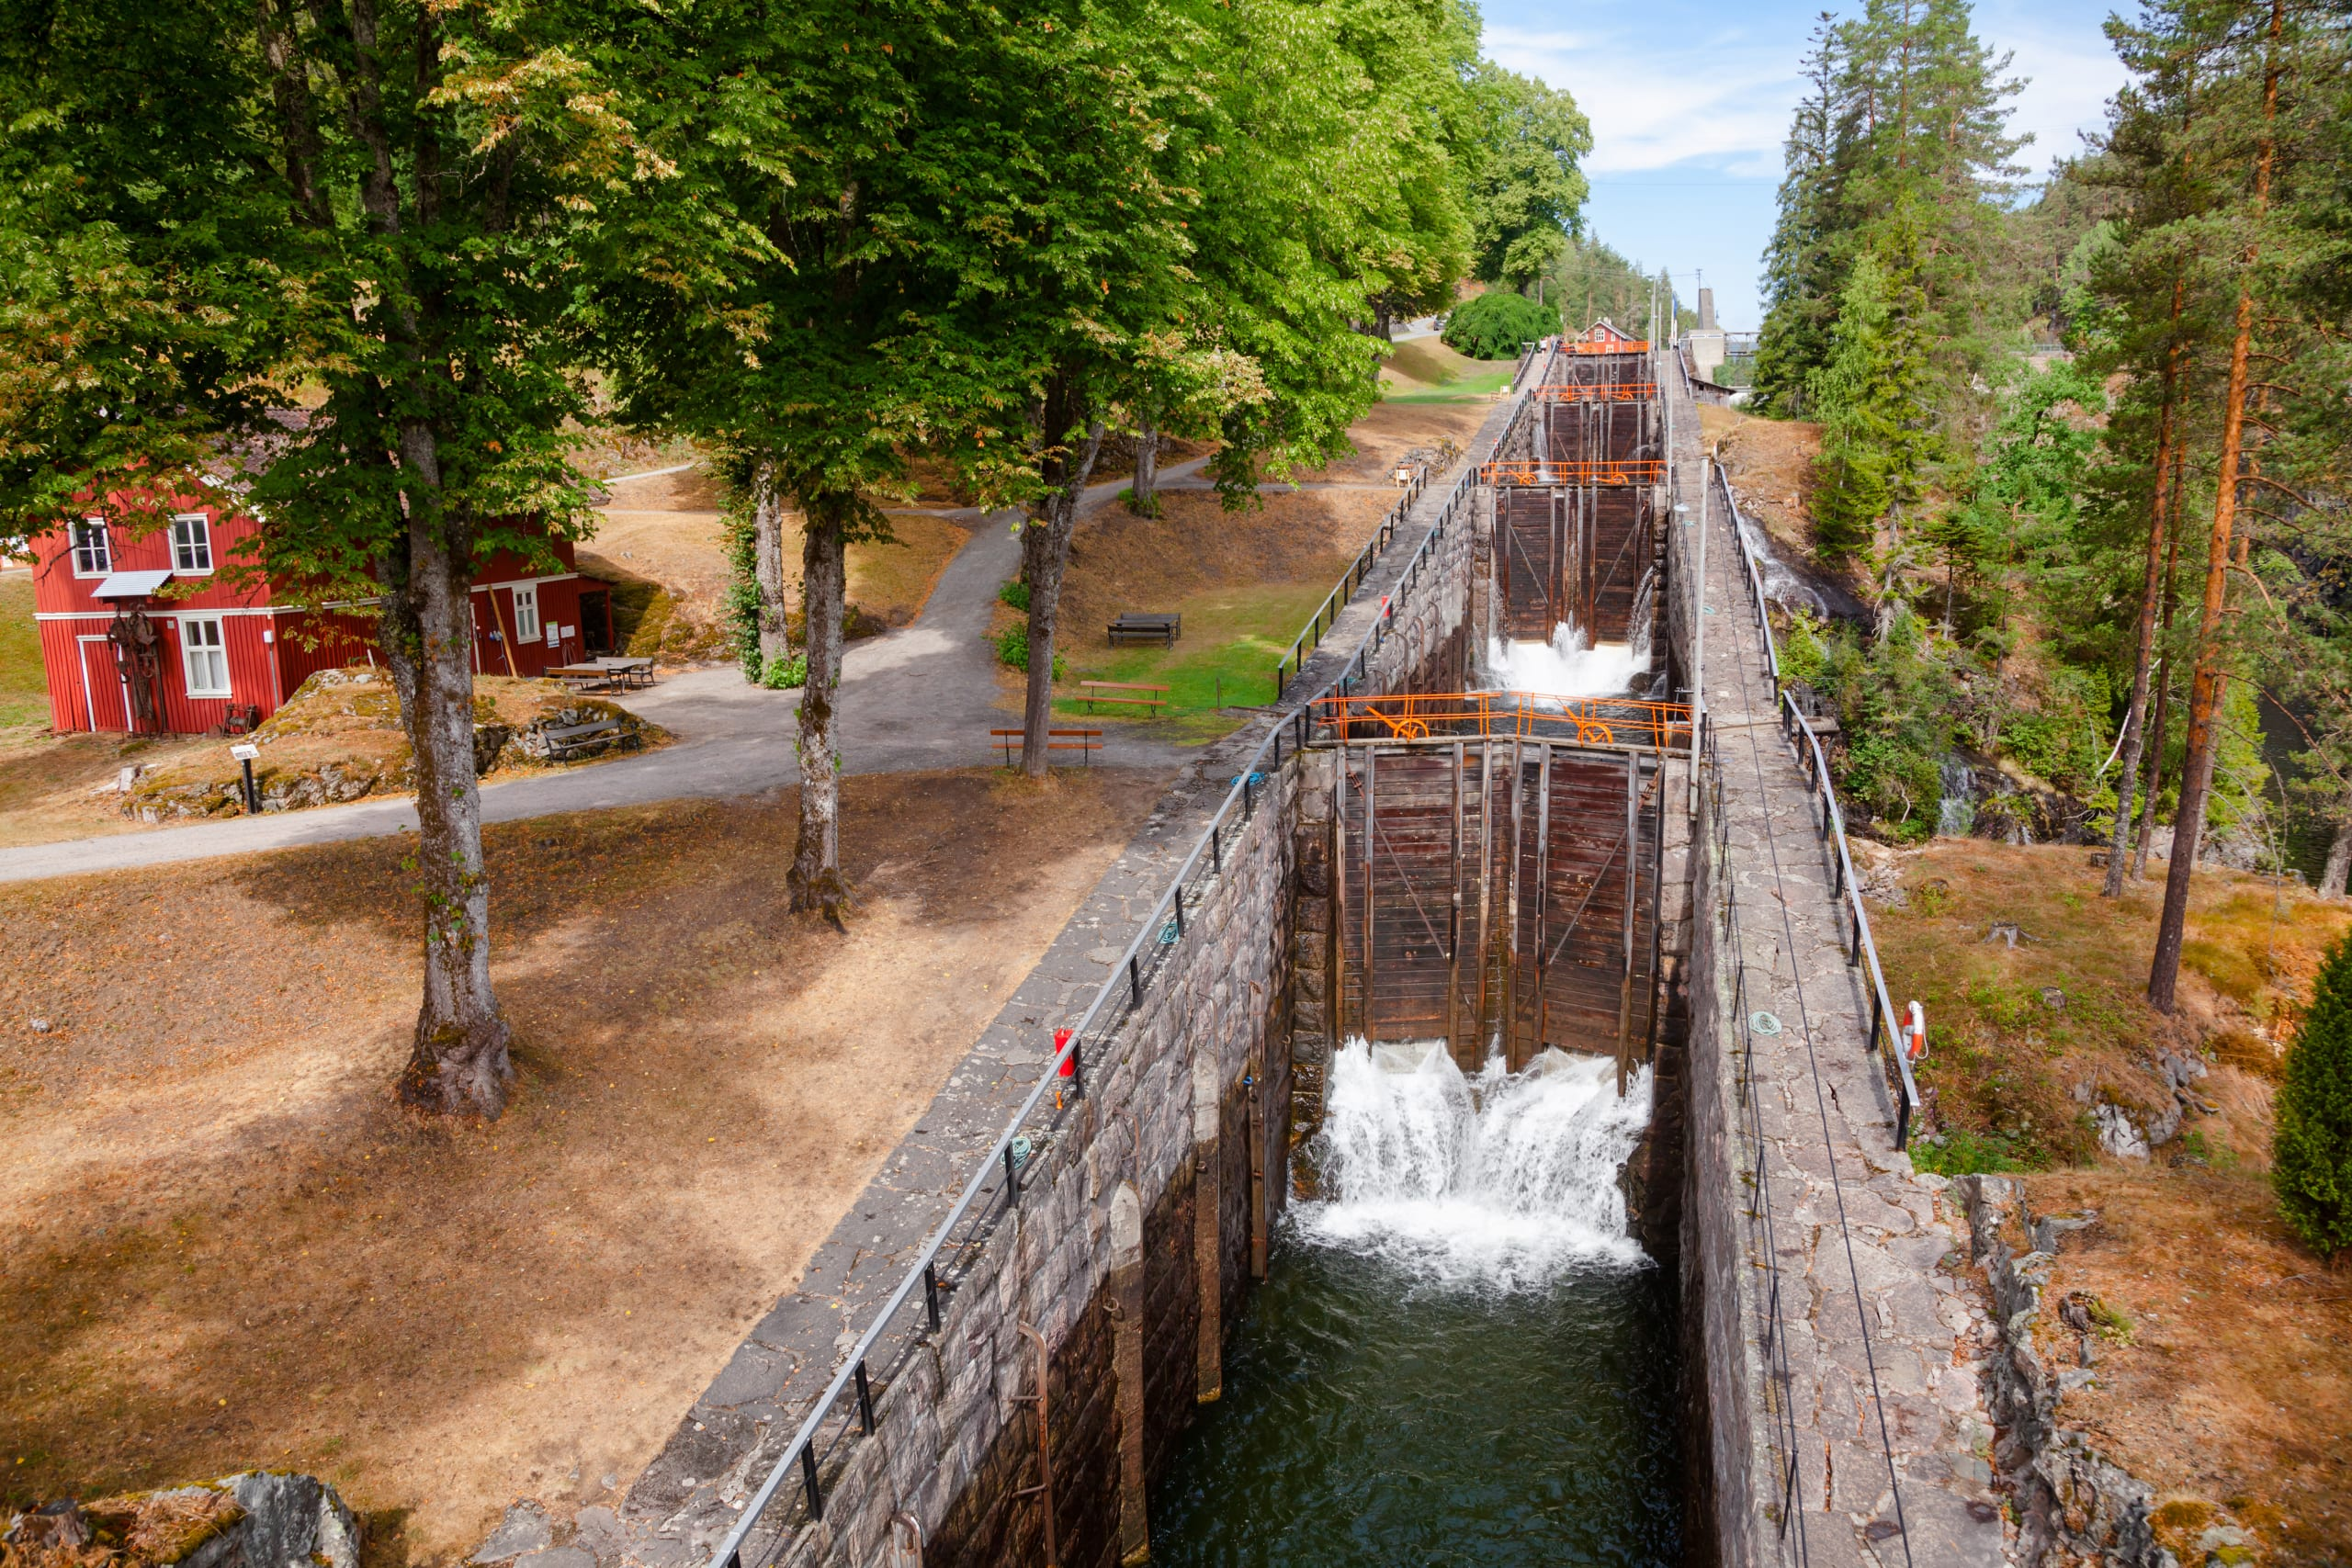 Vrangfoss lock system on the Telemark Canal